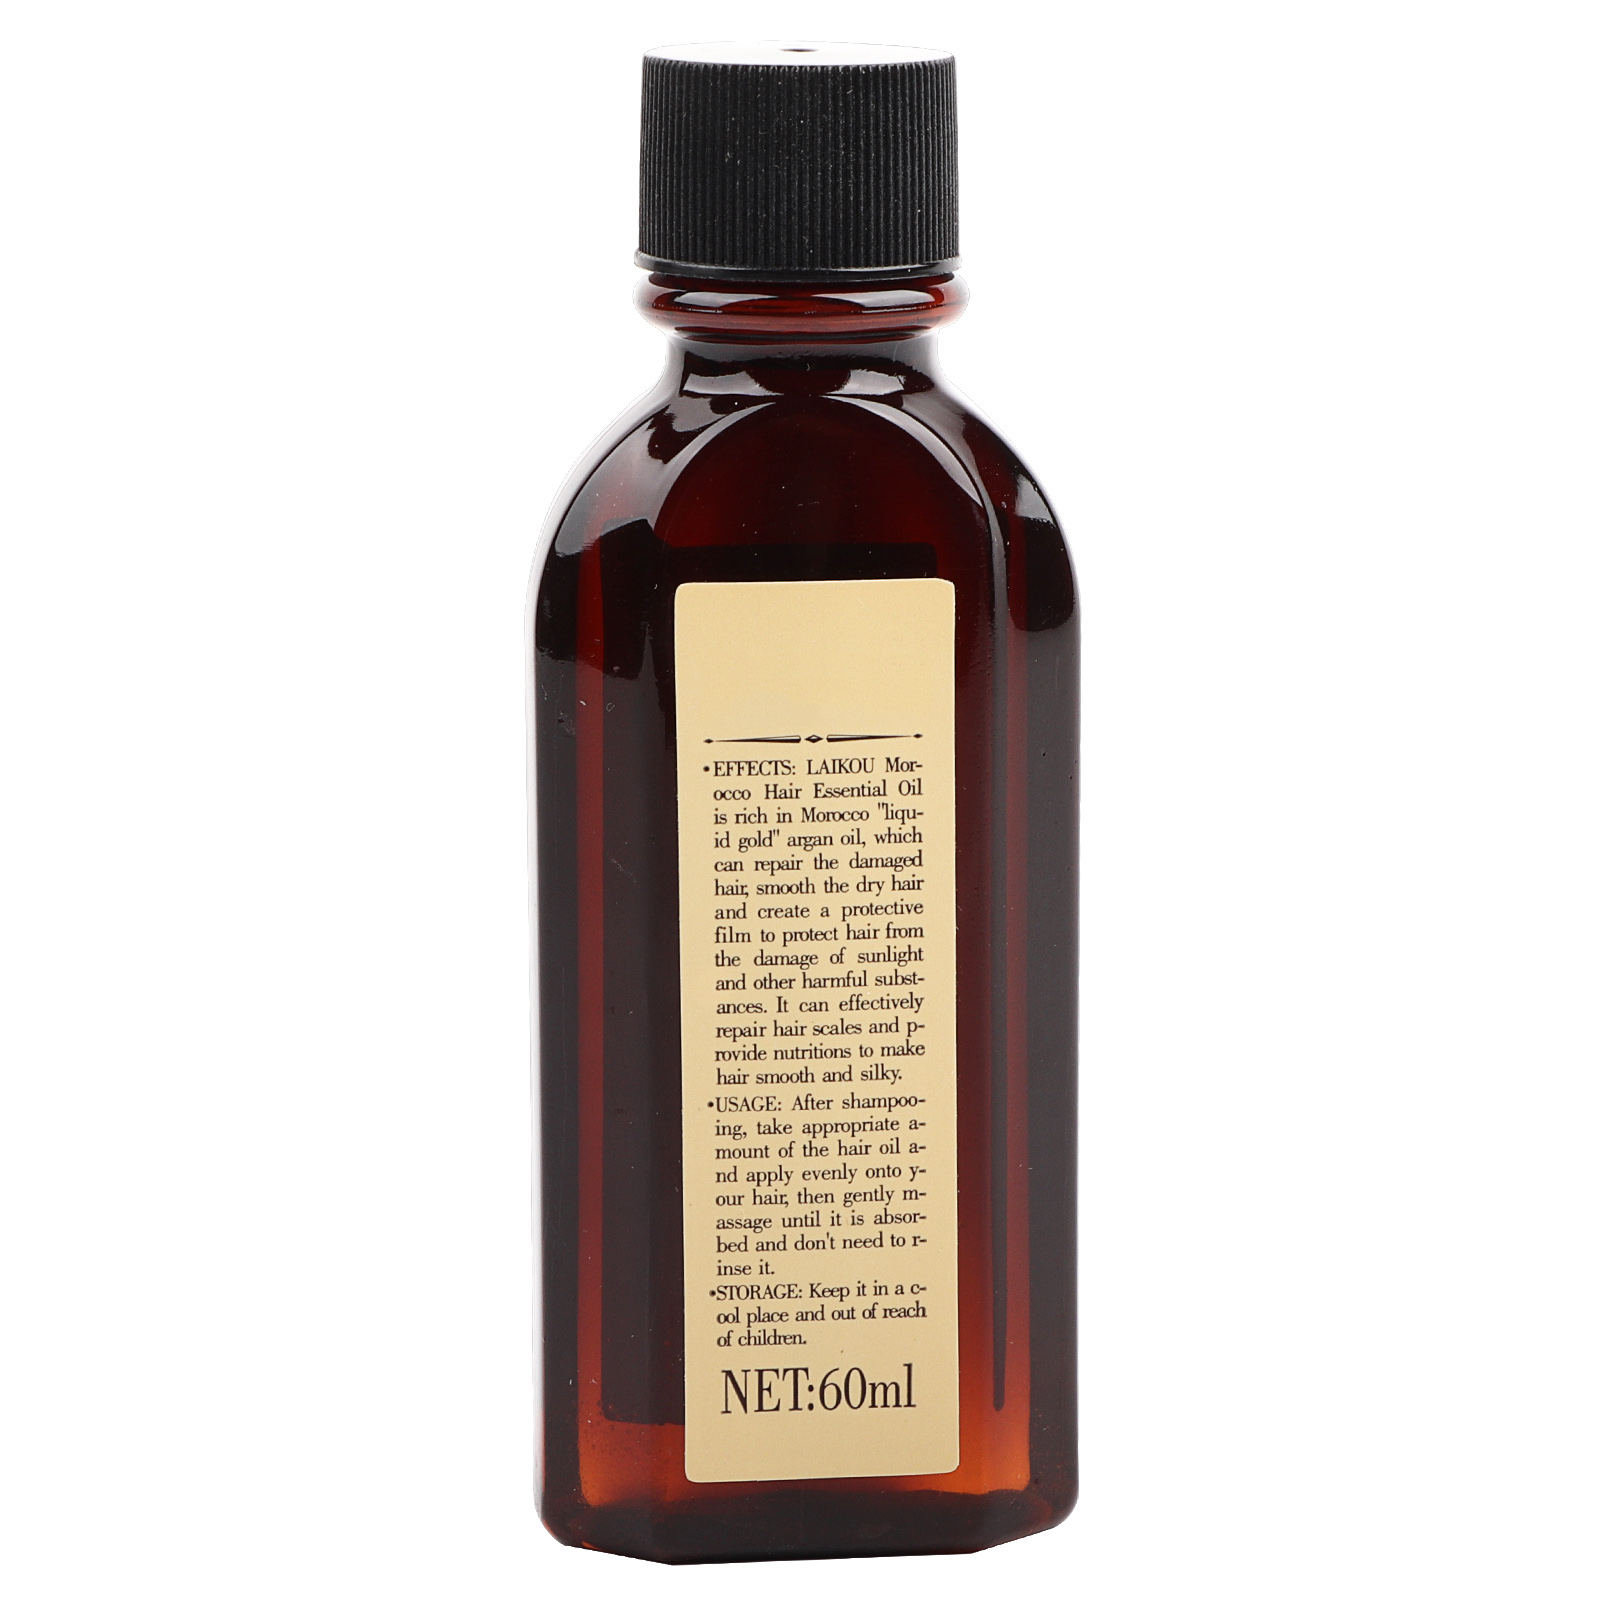 Adult-Dry-Hair-Care-Repair-Hair-Natural-Argan-Oil-Moroccan-Hair-Essential-Oil-dy